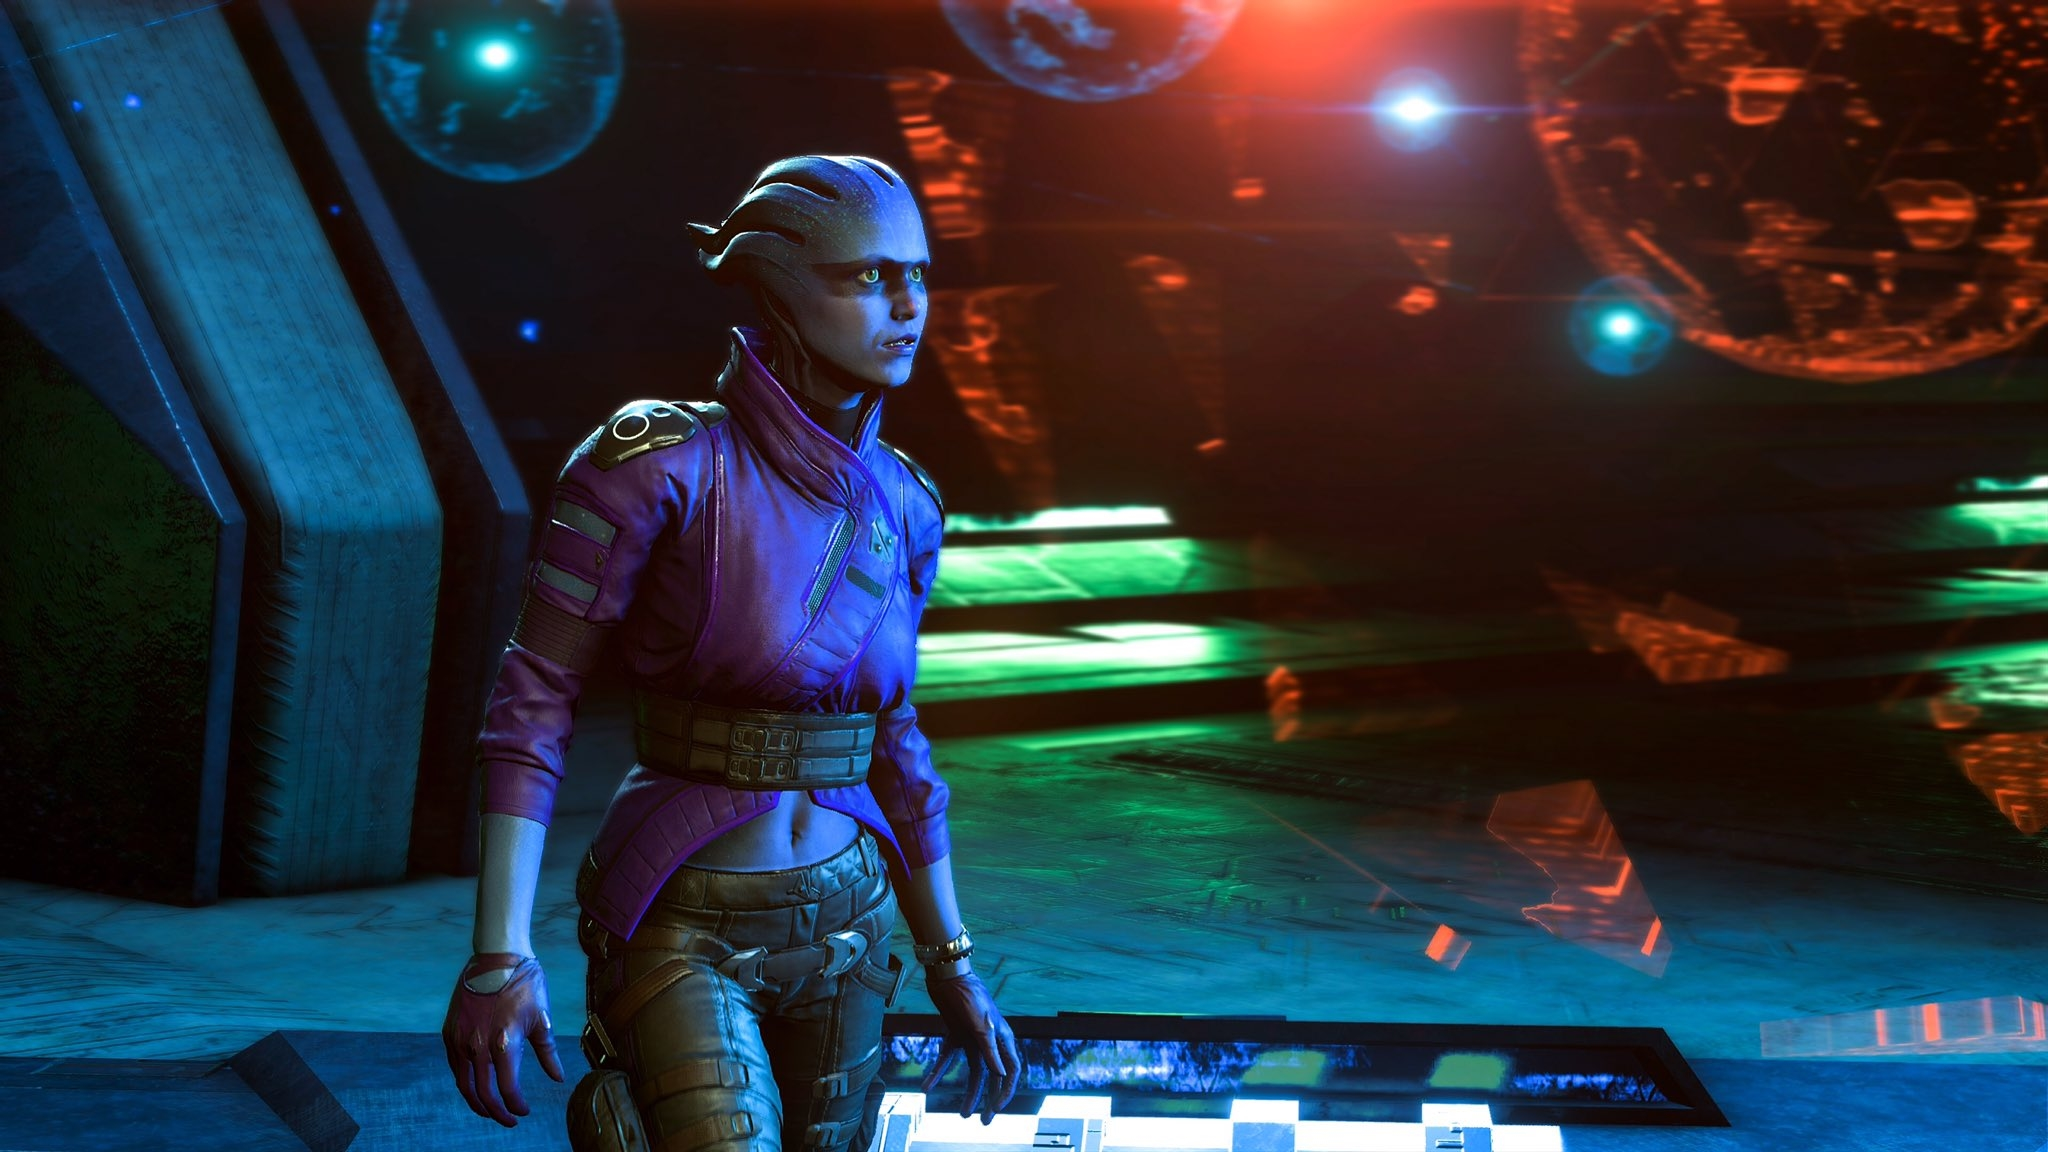 Mass-Effect-Andromeda-Gameplay-Asari